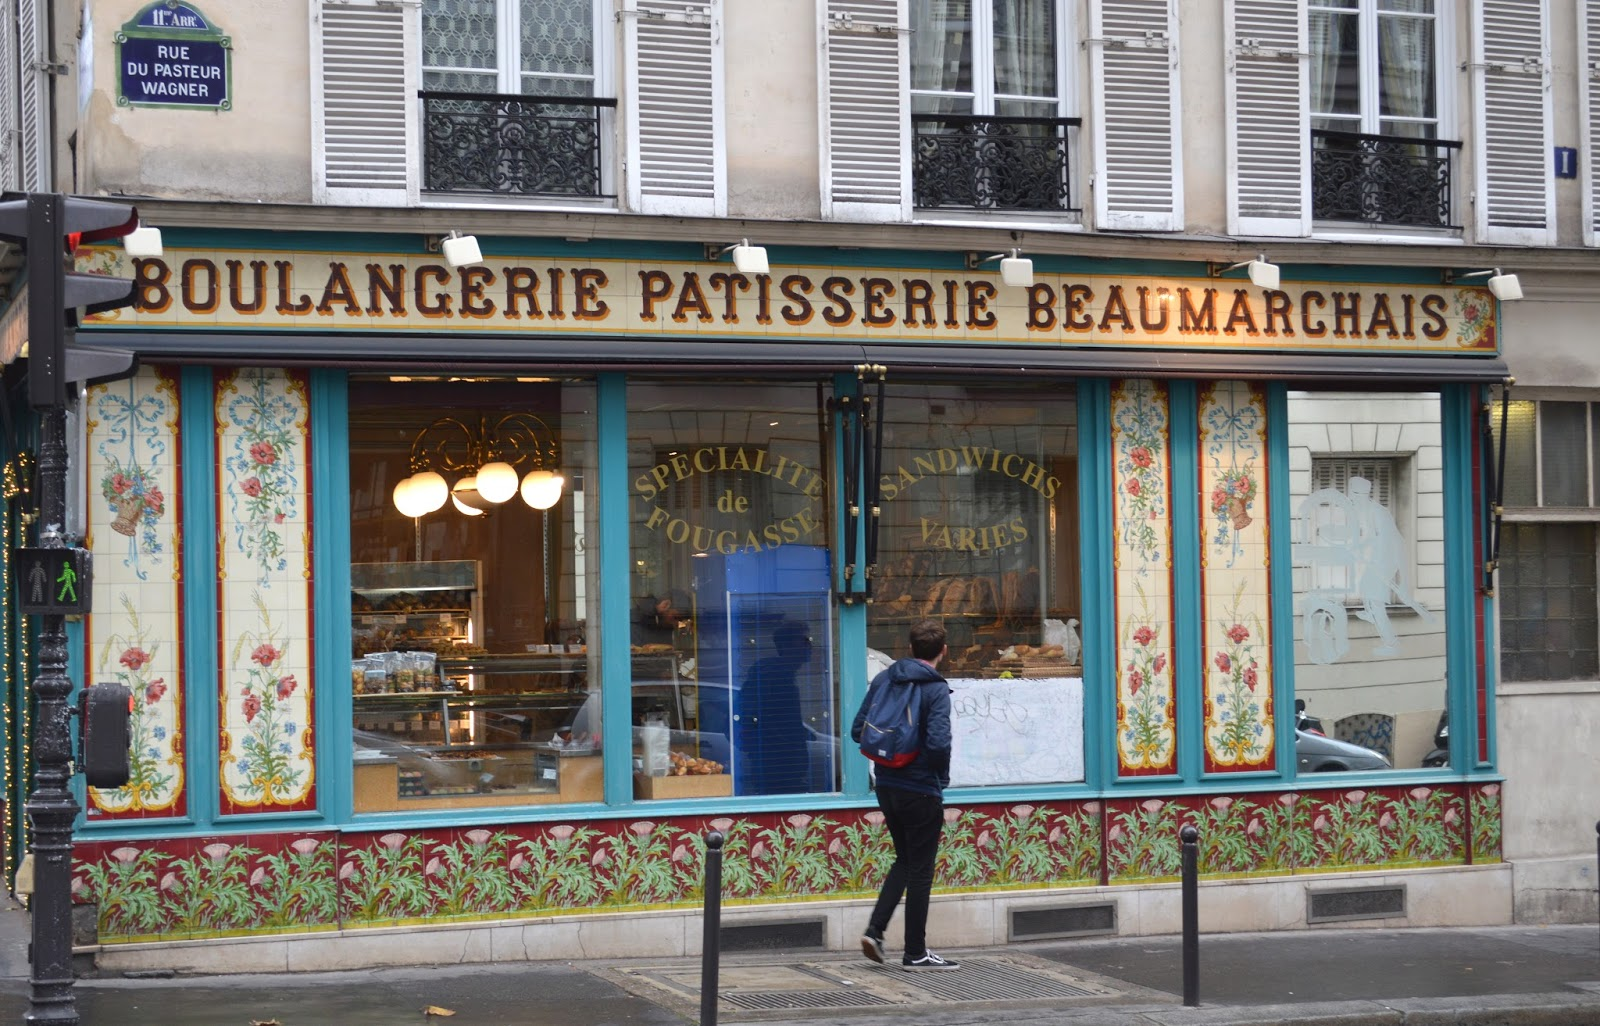 What do to for a weekend in Paris boulangerie boulevard Beaumarchais